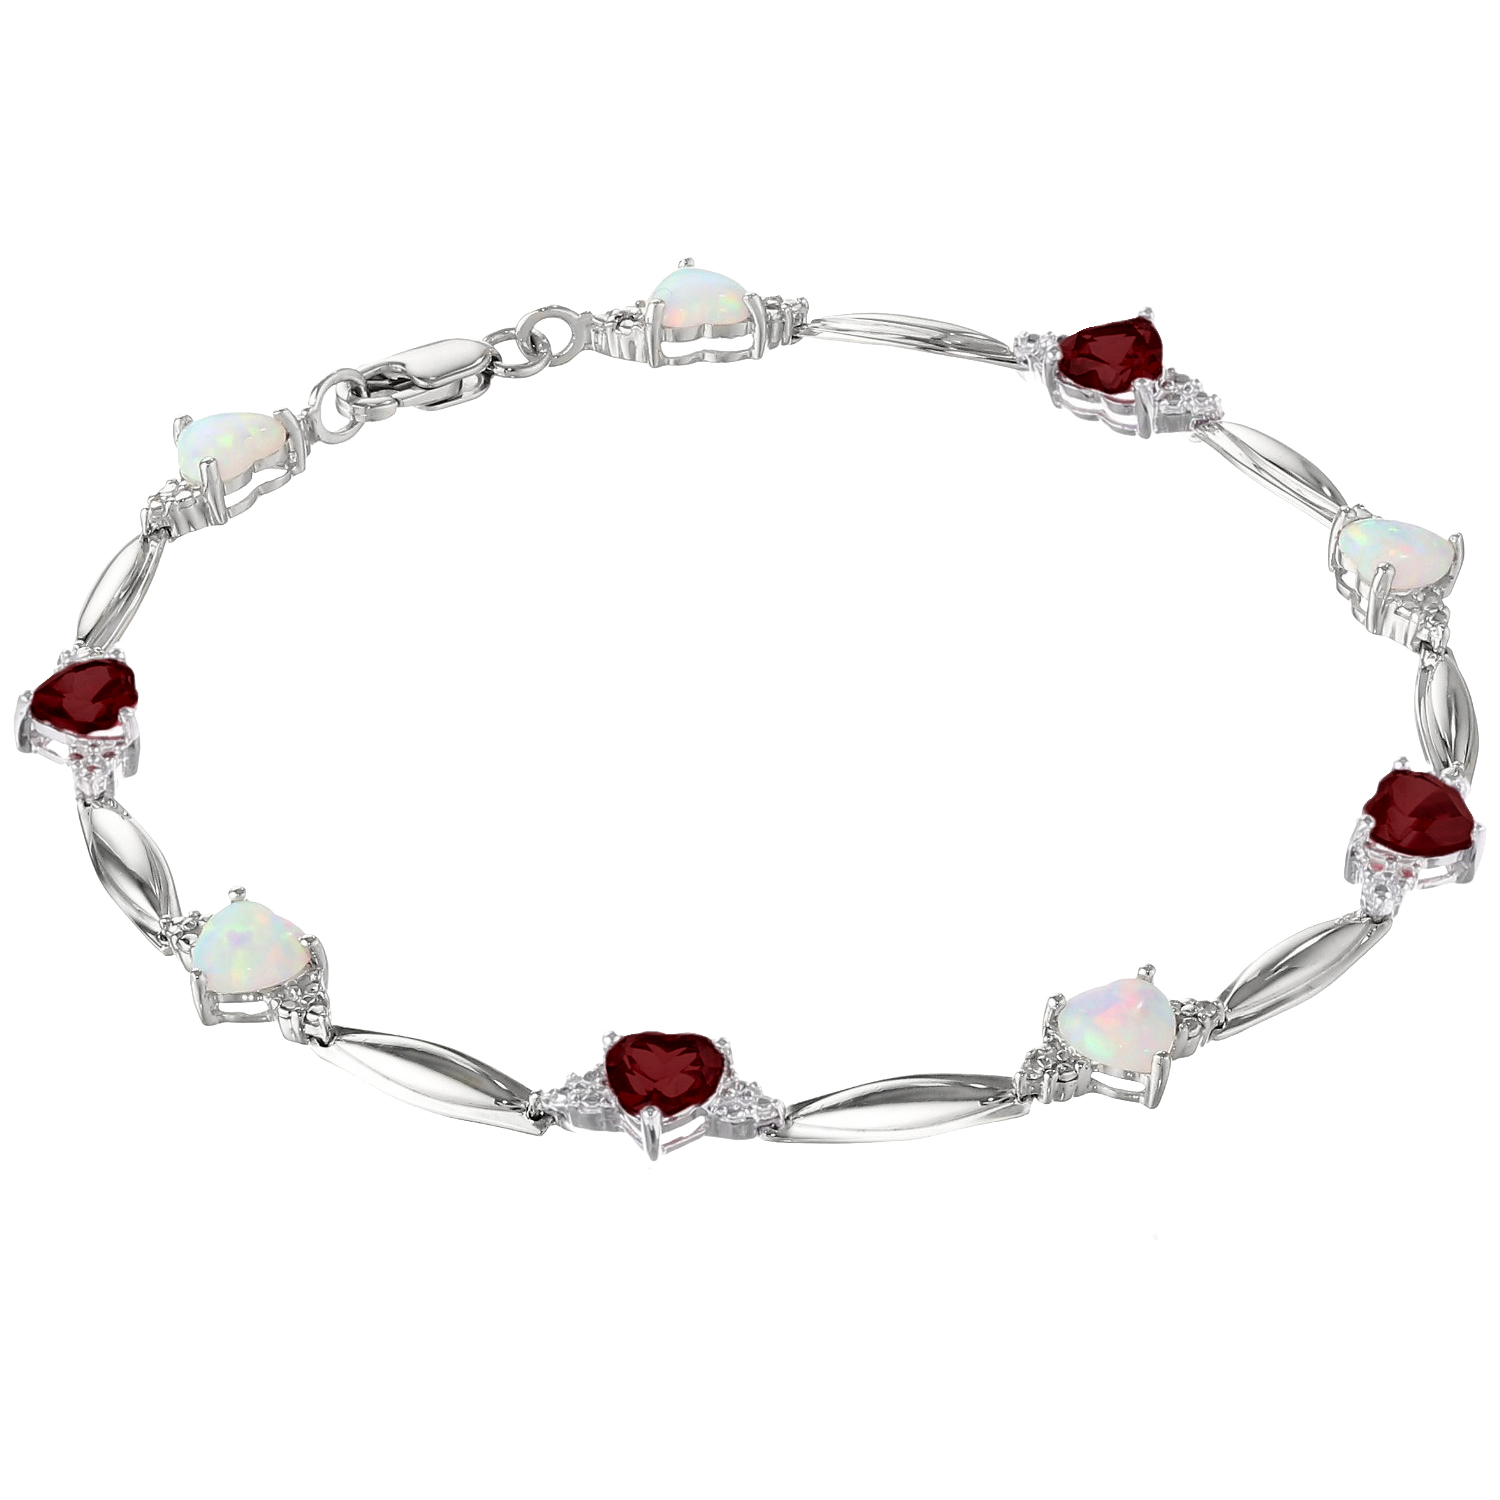 5MM Heart Opal and Garnet .01 cttw Diamond Sterling Silver Bracelet by Metro Jewelry